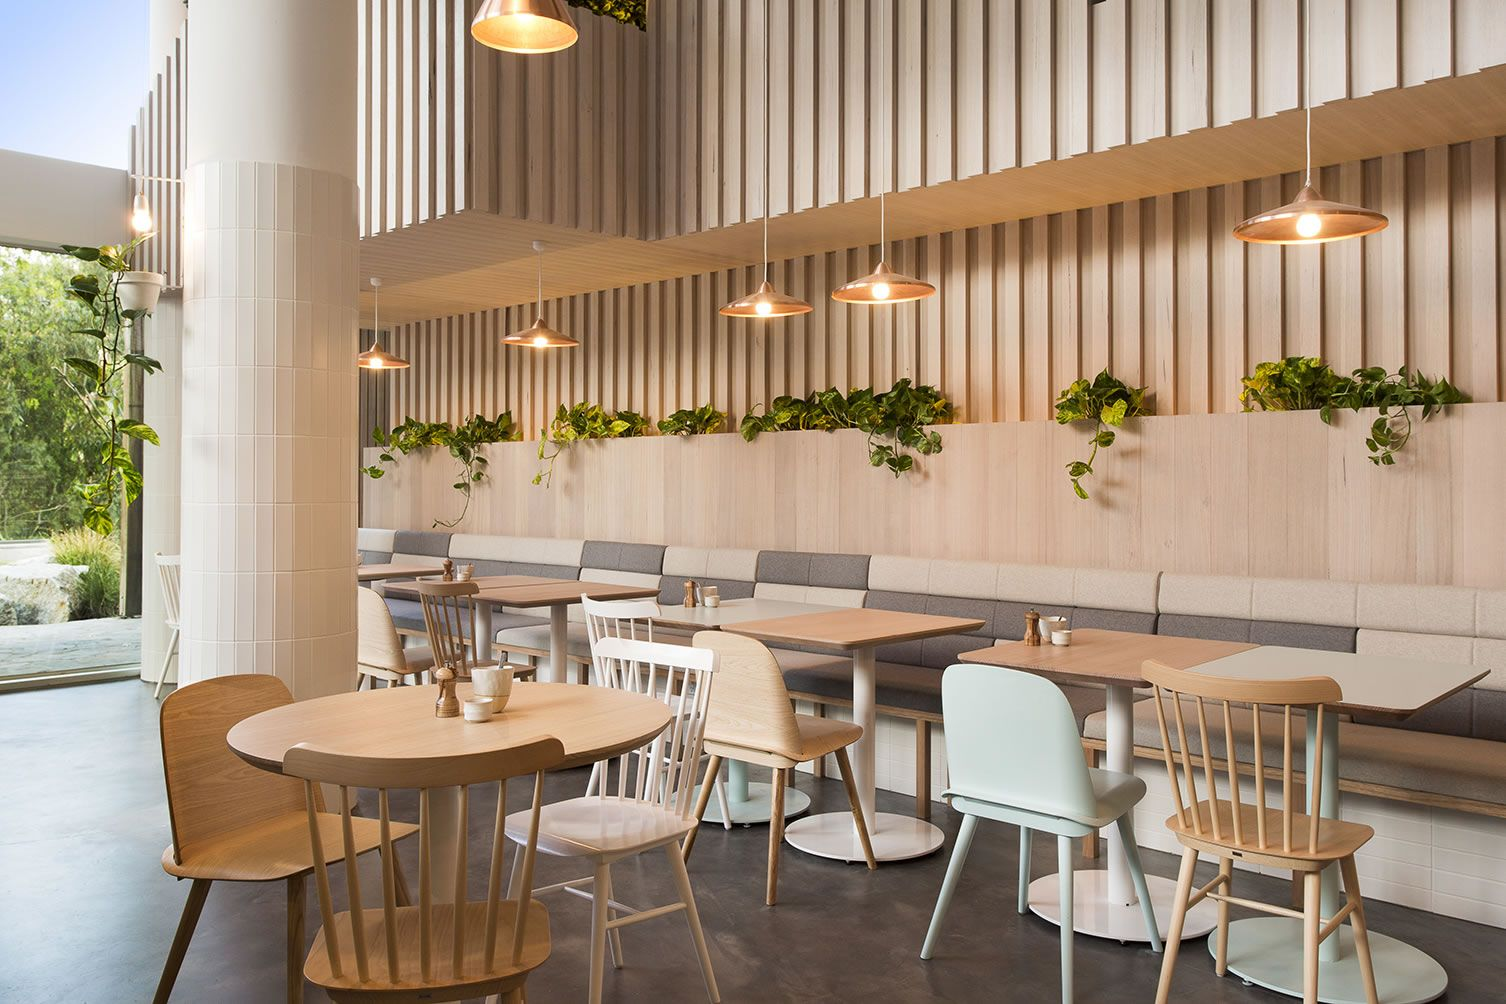 Nestled Below Melbournes Iconic Skipping Girl Biasol Design Studio Saw An Opportunity To Give Kitty Burns A Dual Personality Resulting In A Space That